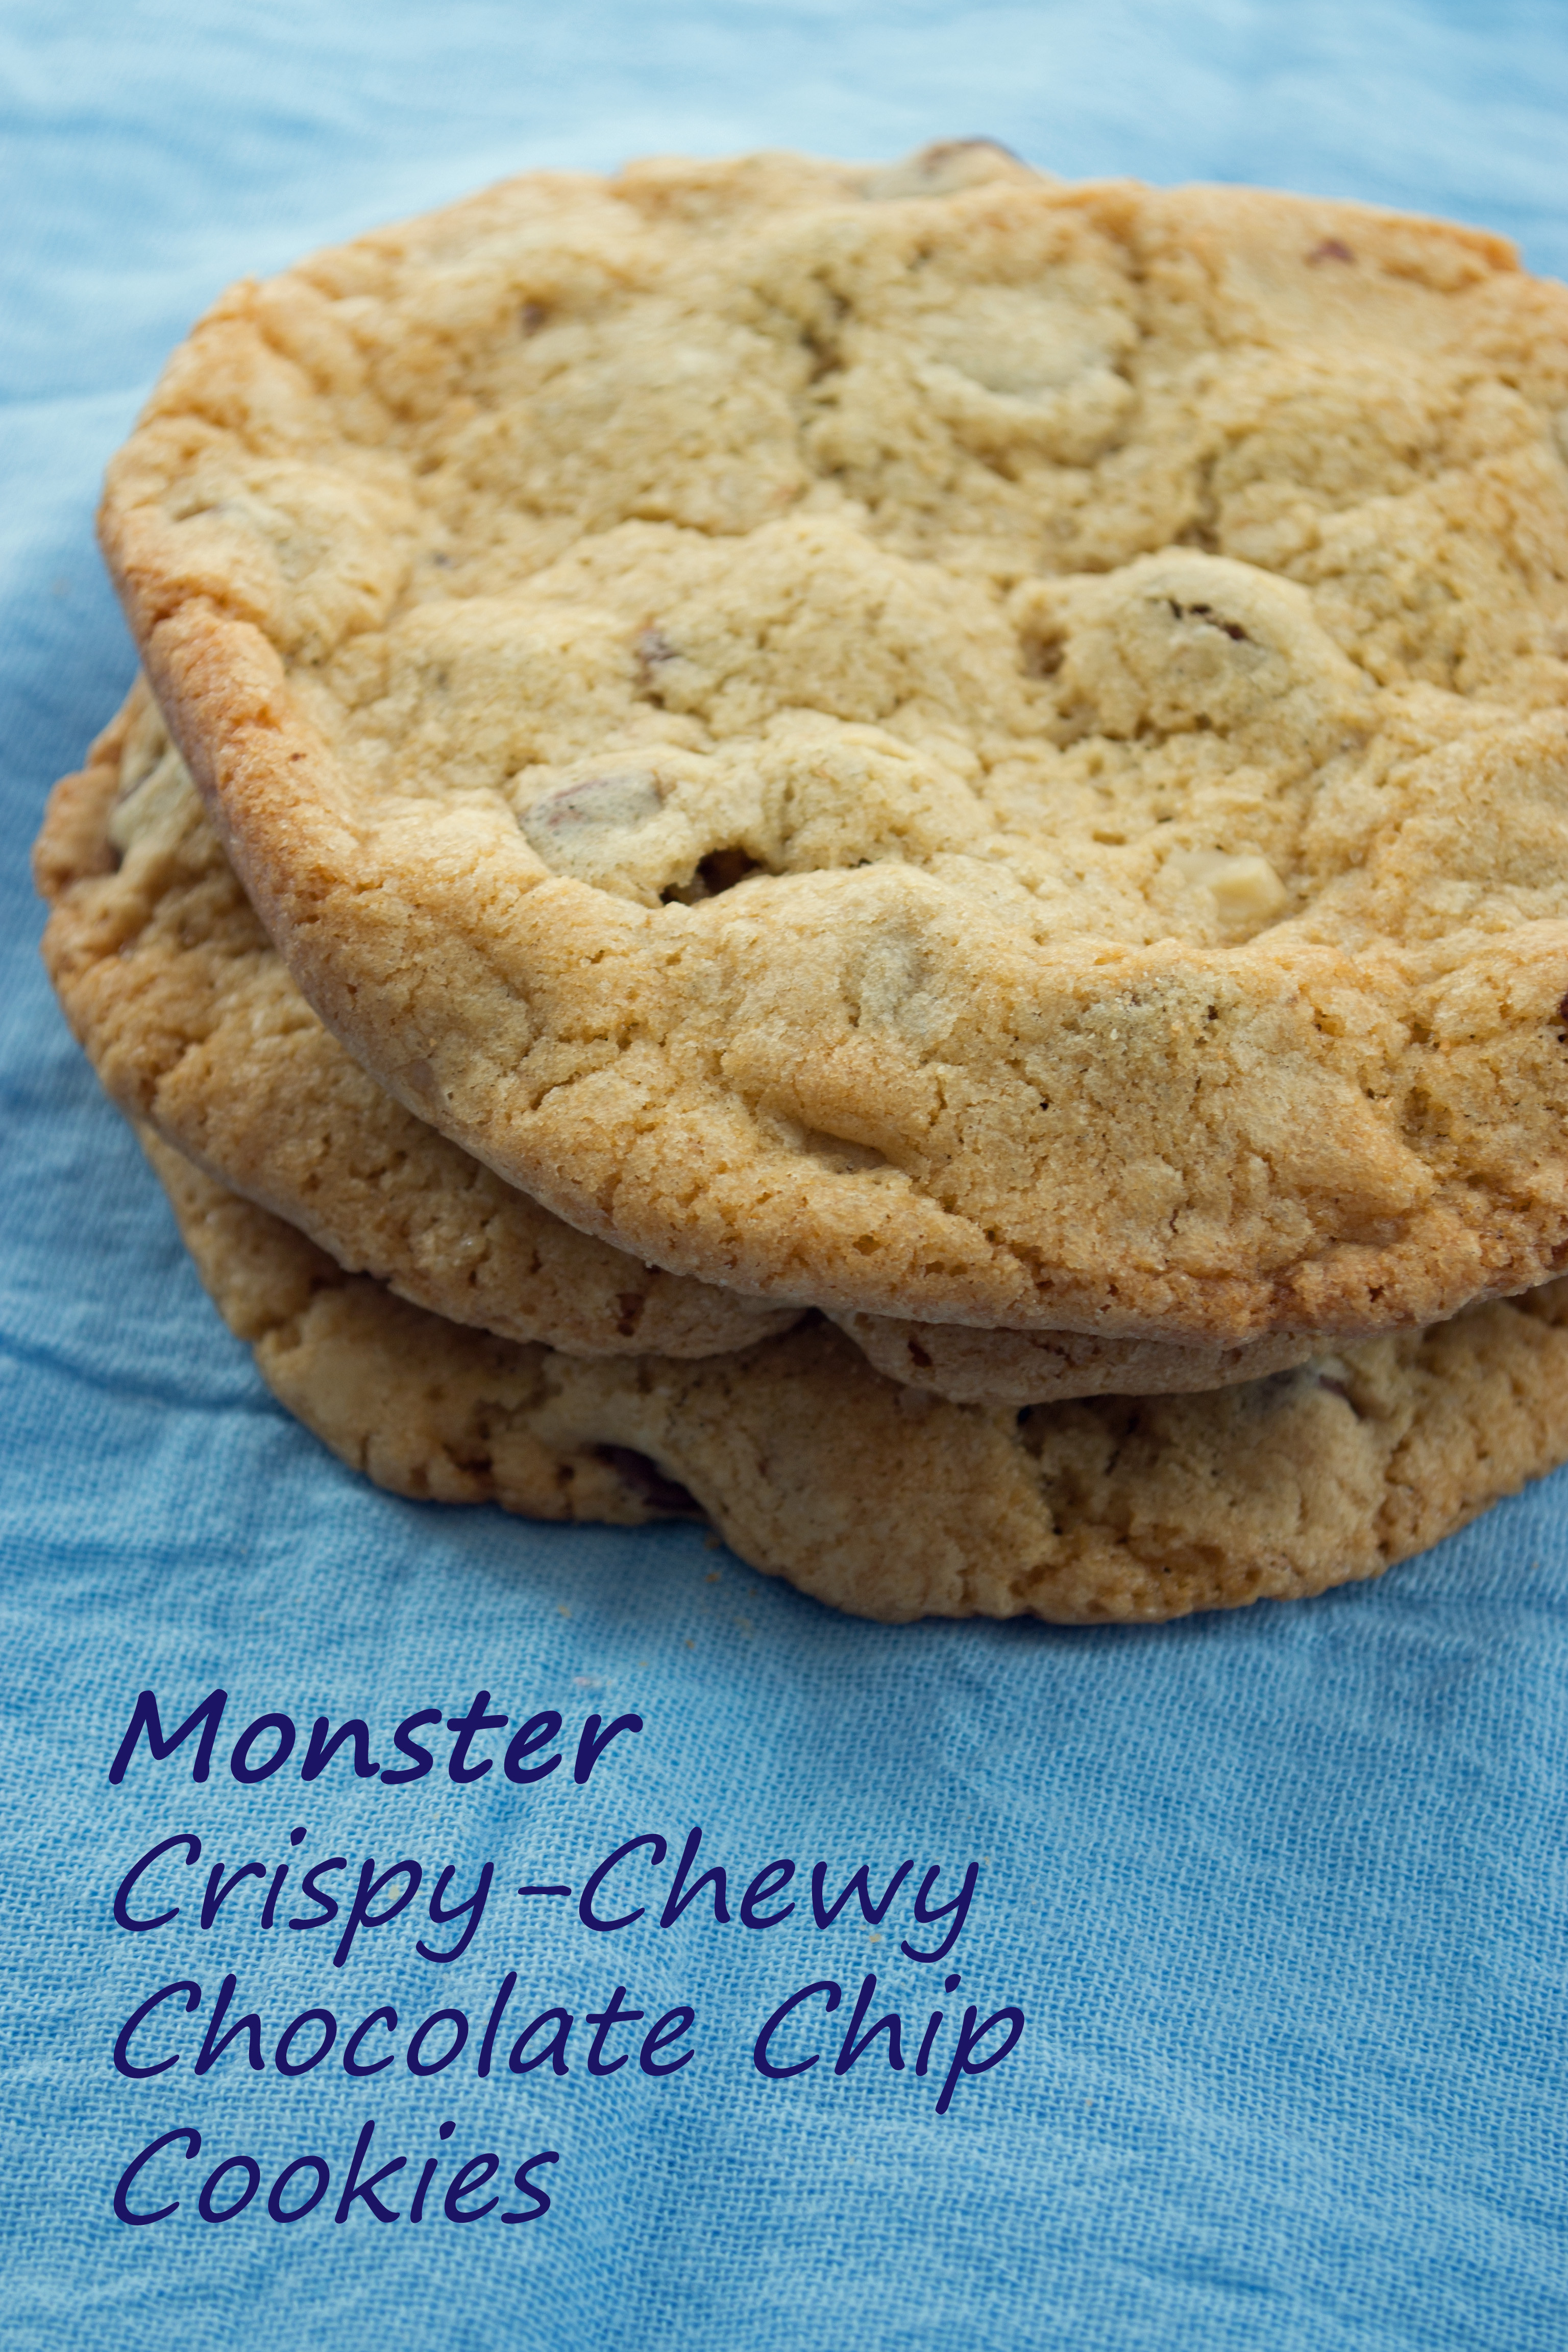 Crunchy Chocolate Chip Cookies  Monster Size Crispy Chewy Chocolate Chip Cookies